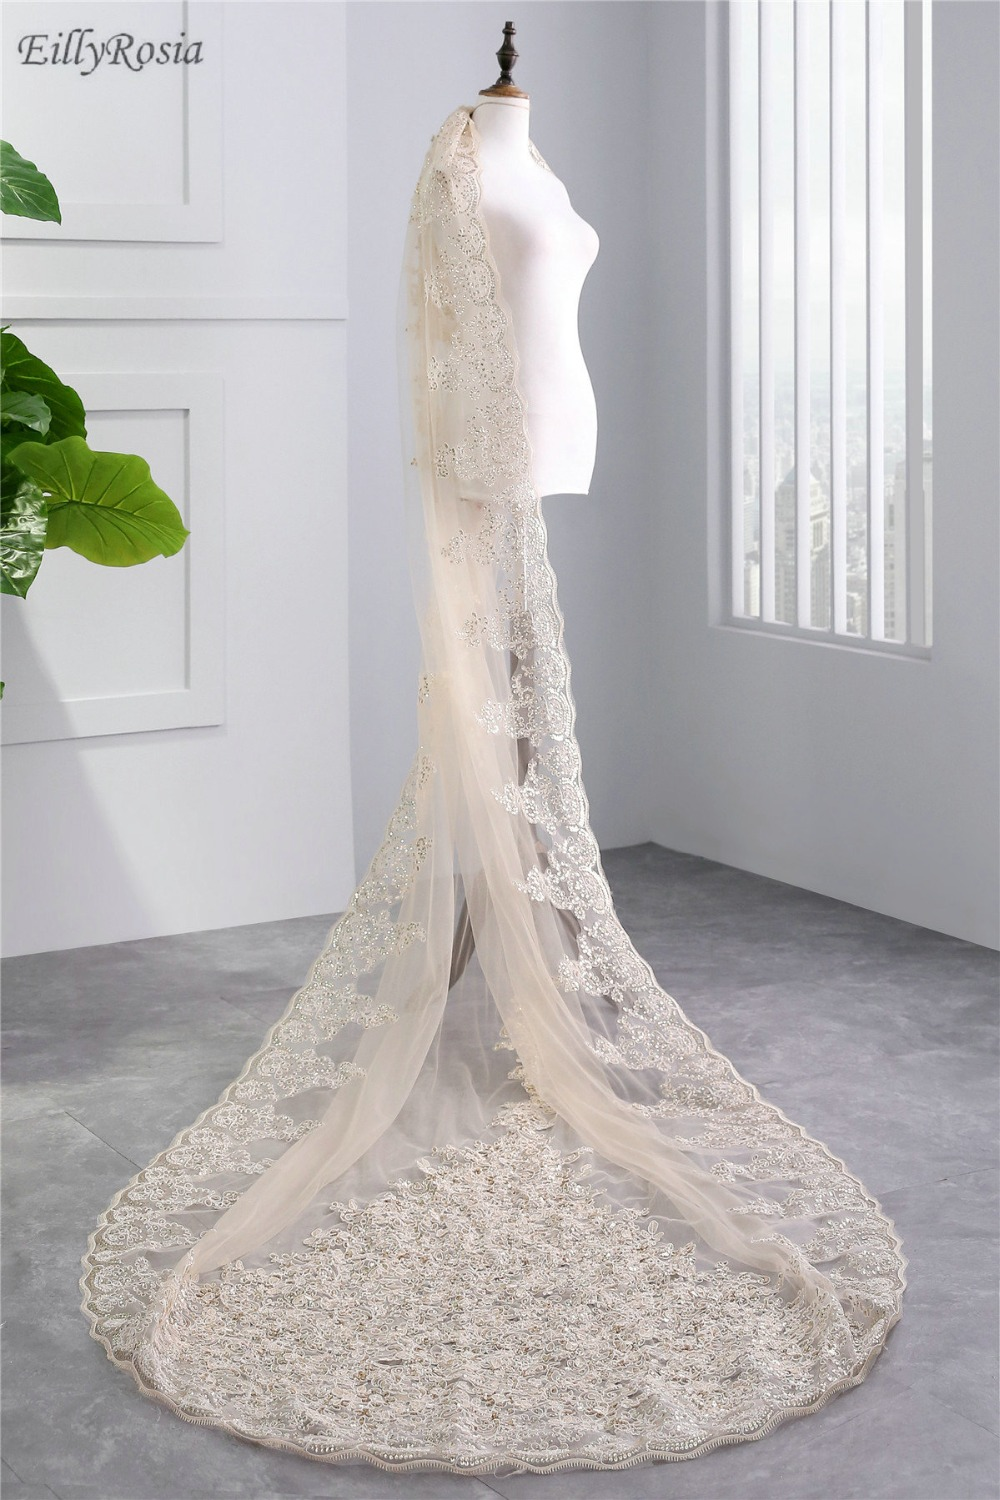 Champagne Wedding Veils Long Lace Appliques Sequins Ivory White Luxury Bridal Veils For Bride Soft Tulle One Layer Voile Mariage